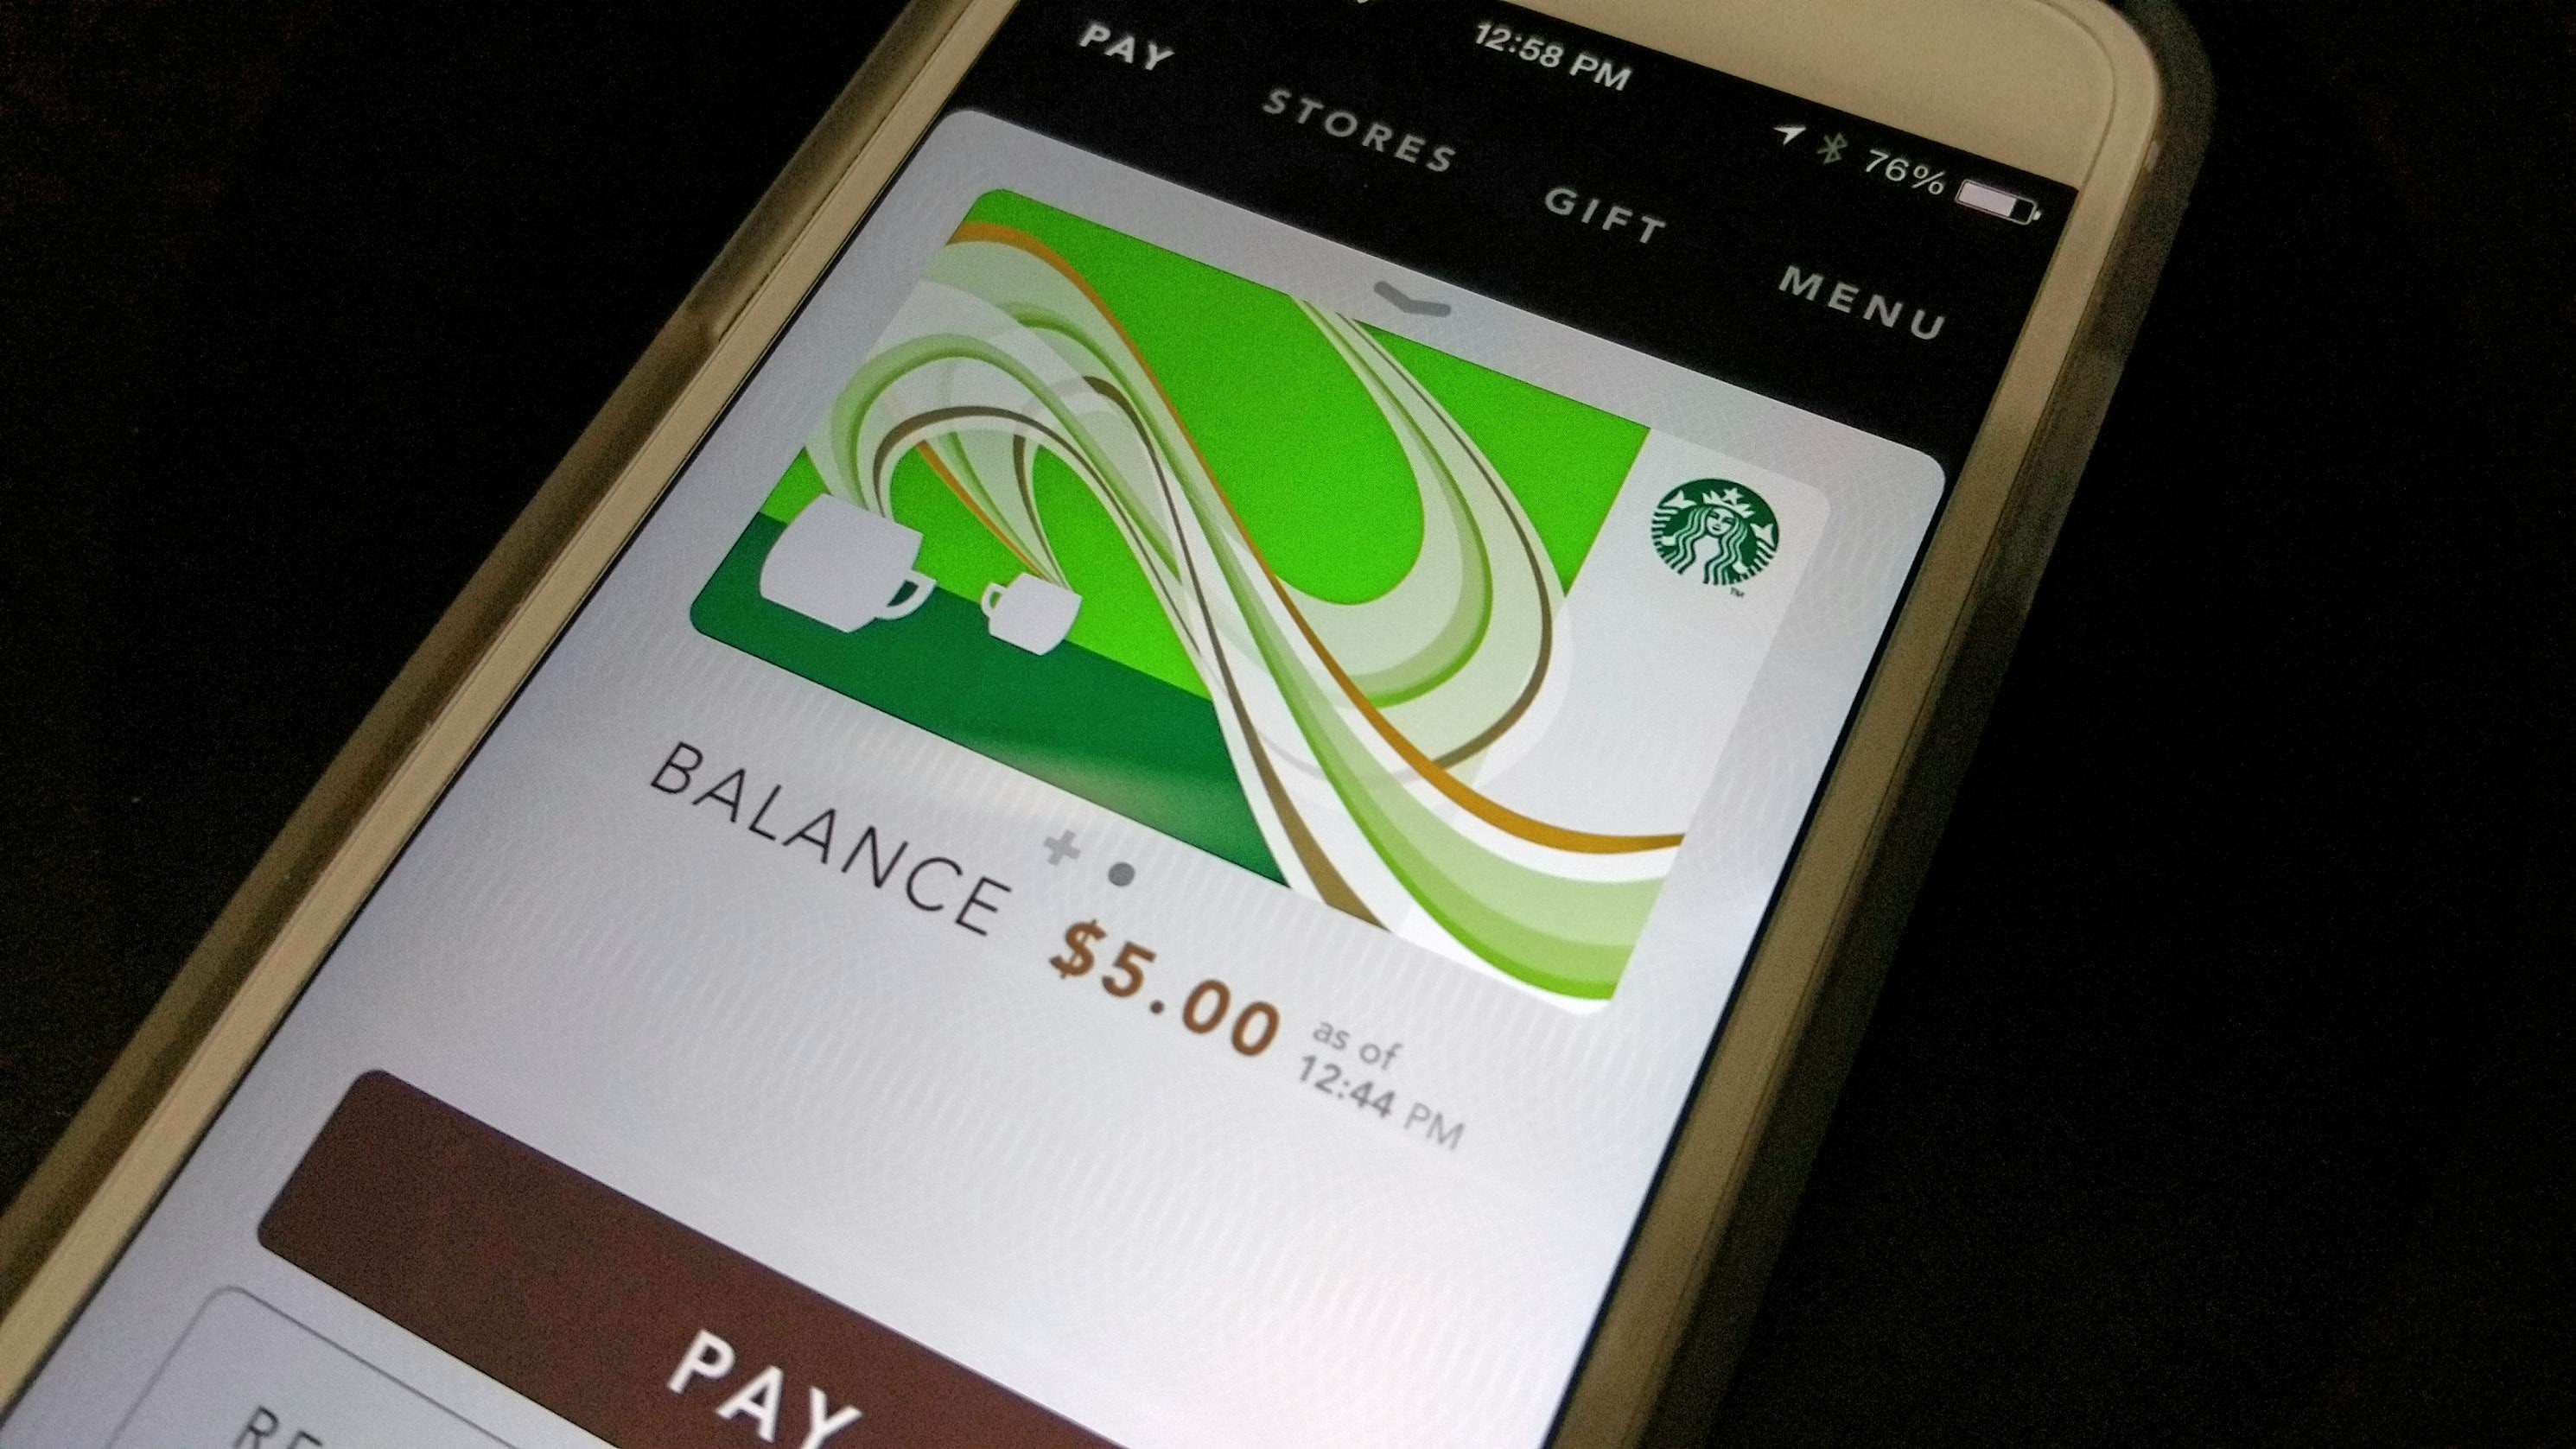 starbucks app how to add gift card